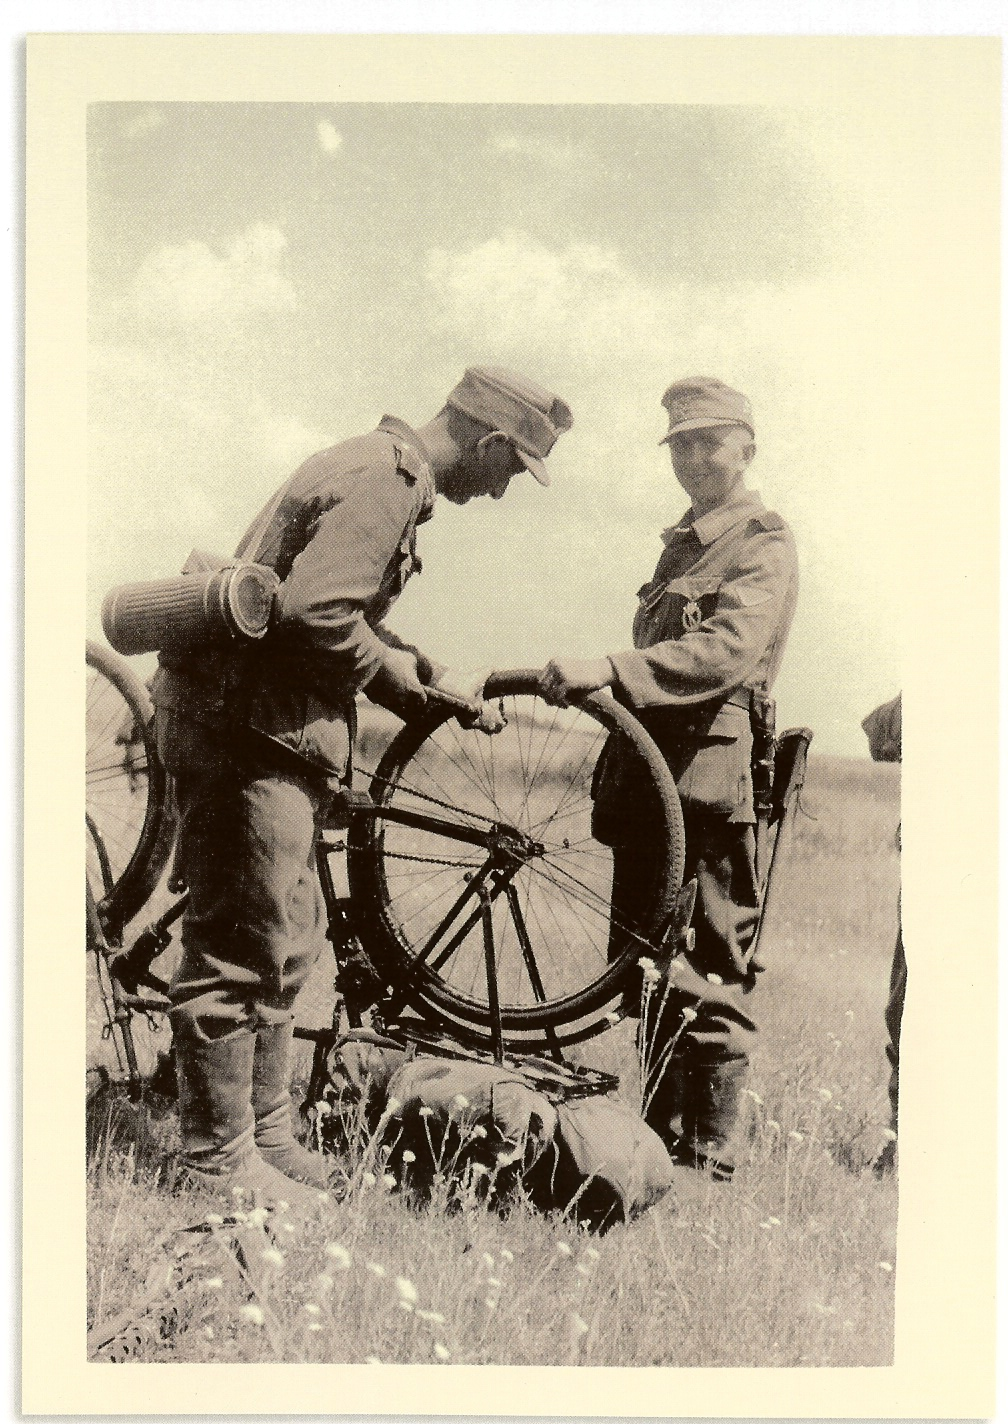 German%2BSoldier%2Bserving%2Bas%2Ba%2Bmotorcycle%2Bcourier%2Bwith%2Bthe%2BWehrmacht%2Bon%2Bthe%2BRussian%2BFront%252C%2Bduring%2BWW2c.jpg